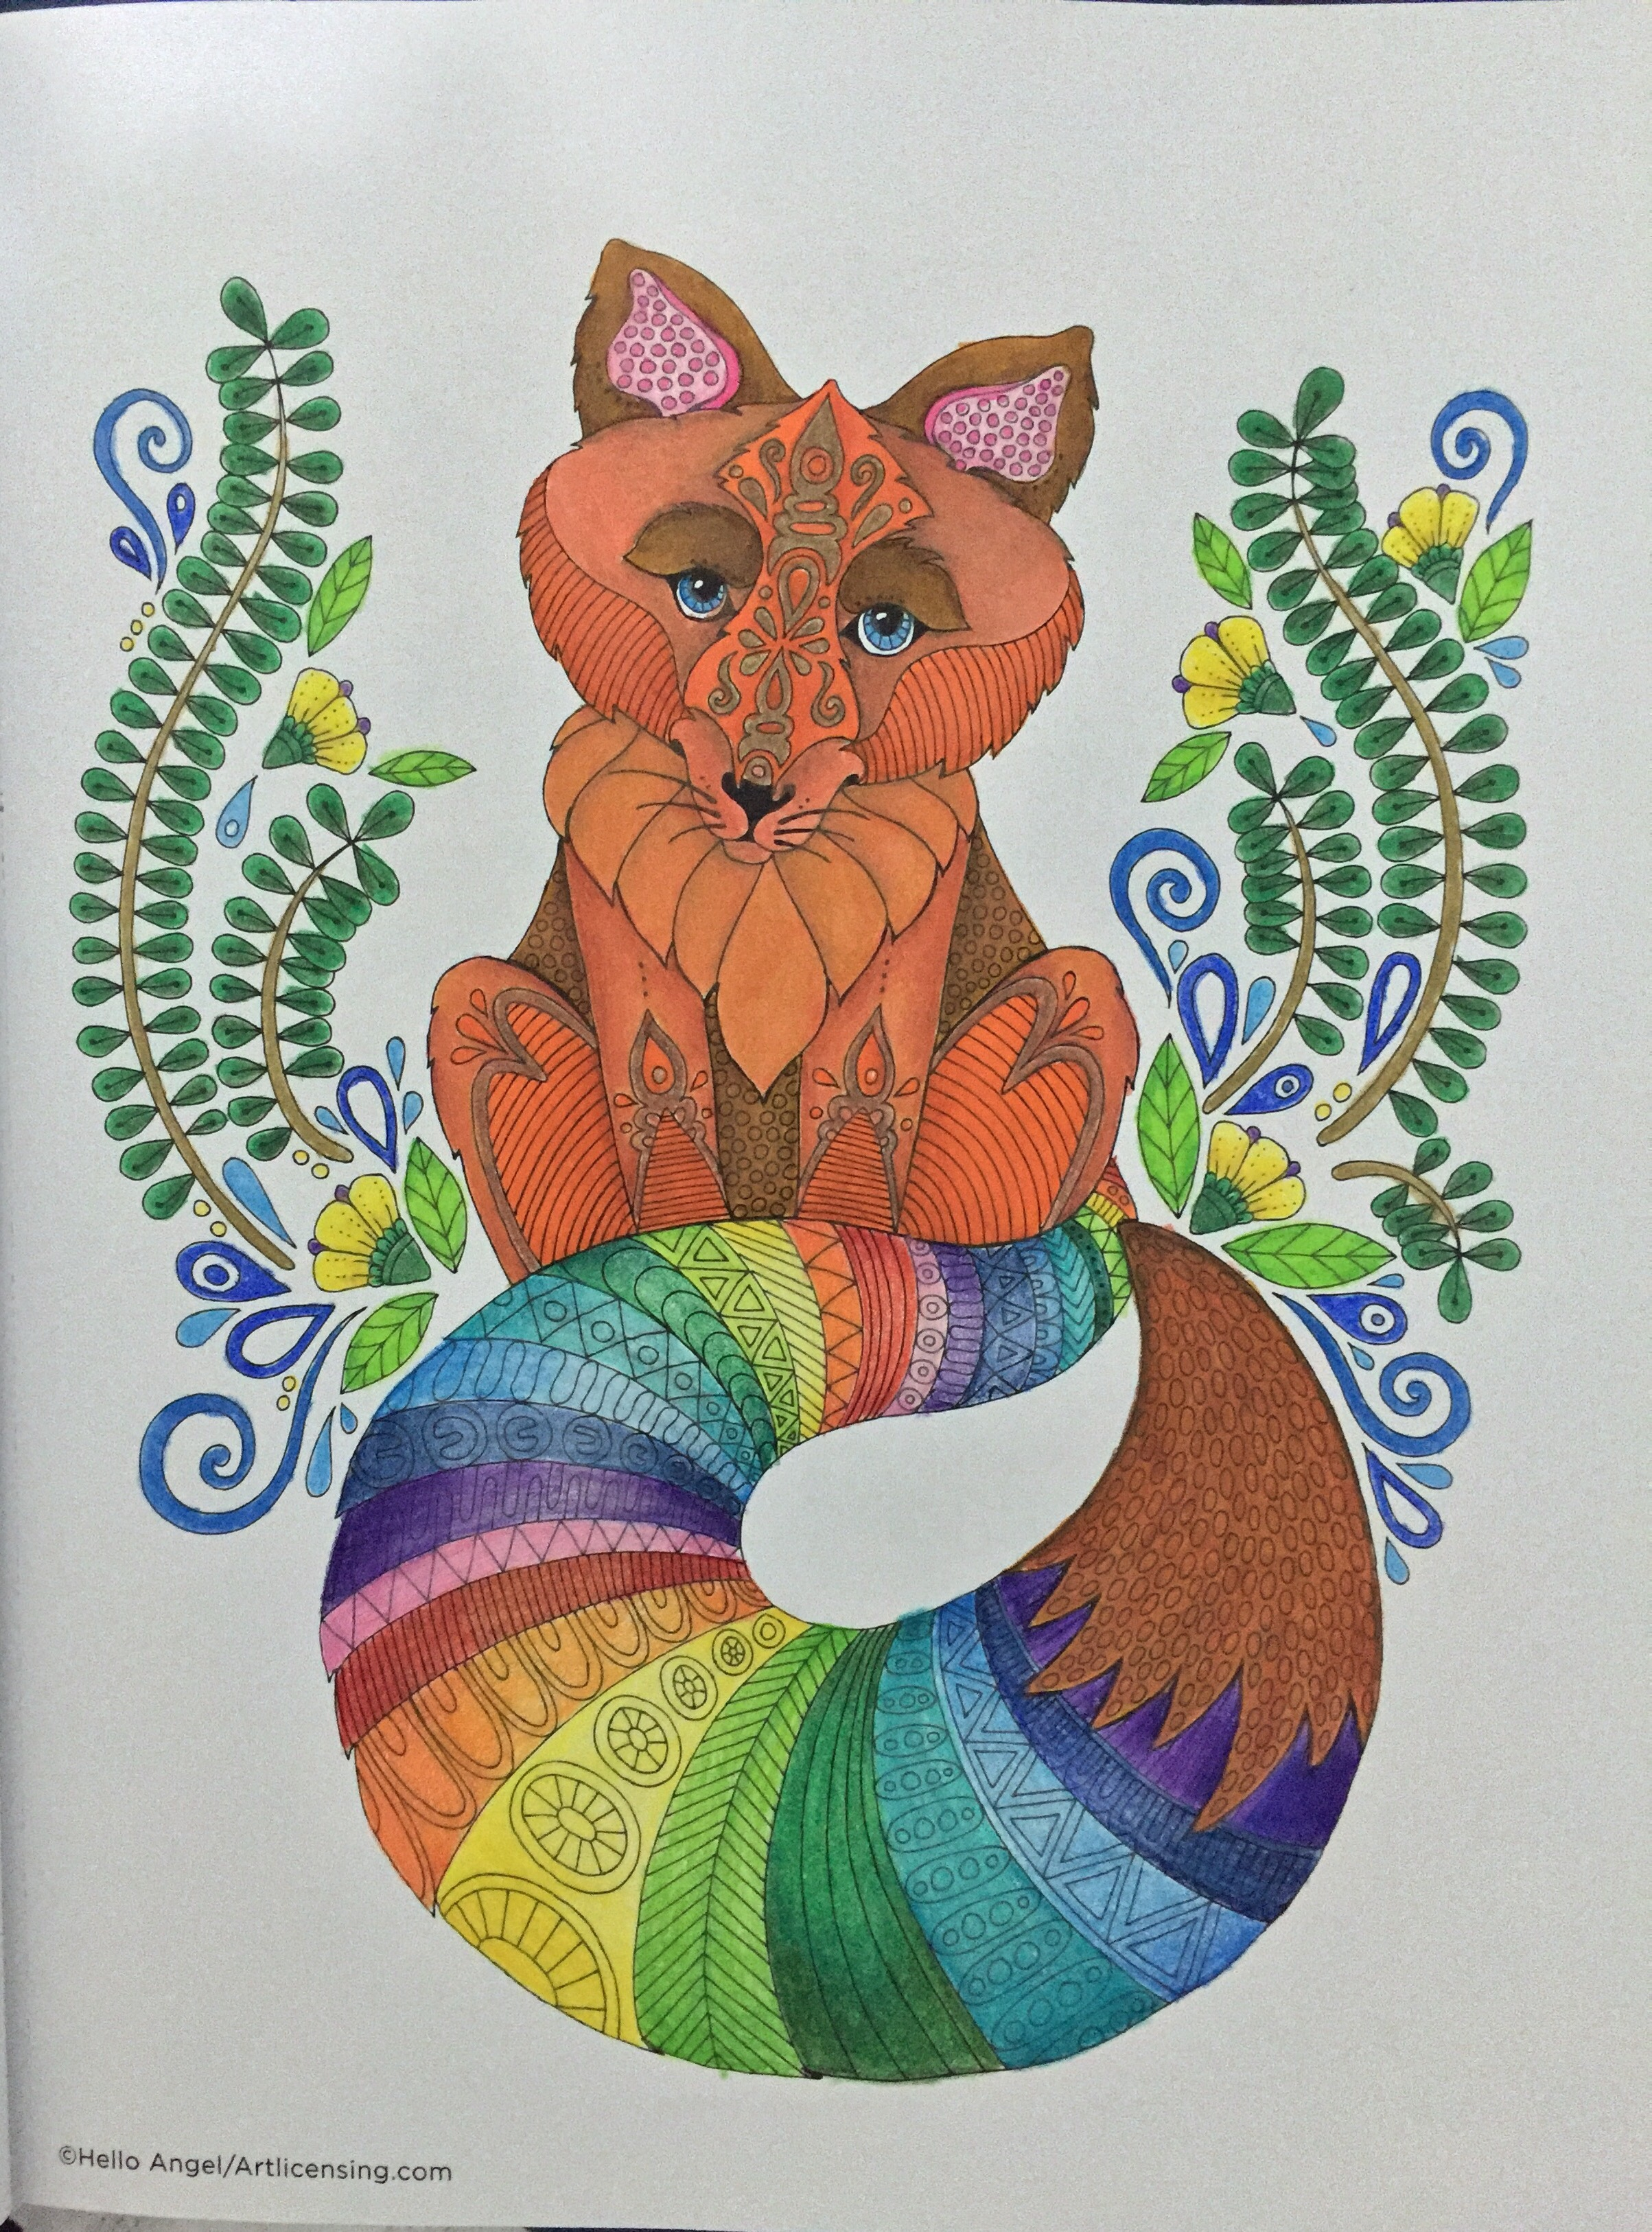 Coloring Adult Colouring Animals Doodling Animorphia Color Pencils Tangles Completed Angel Van Dam Colour Book Review